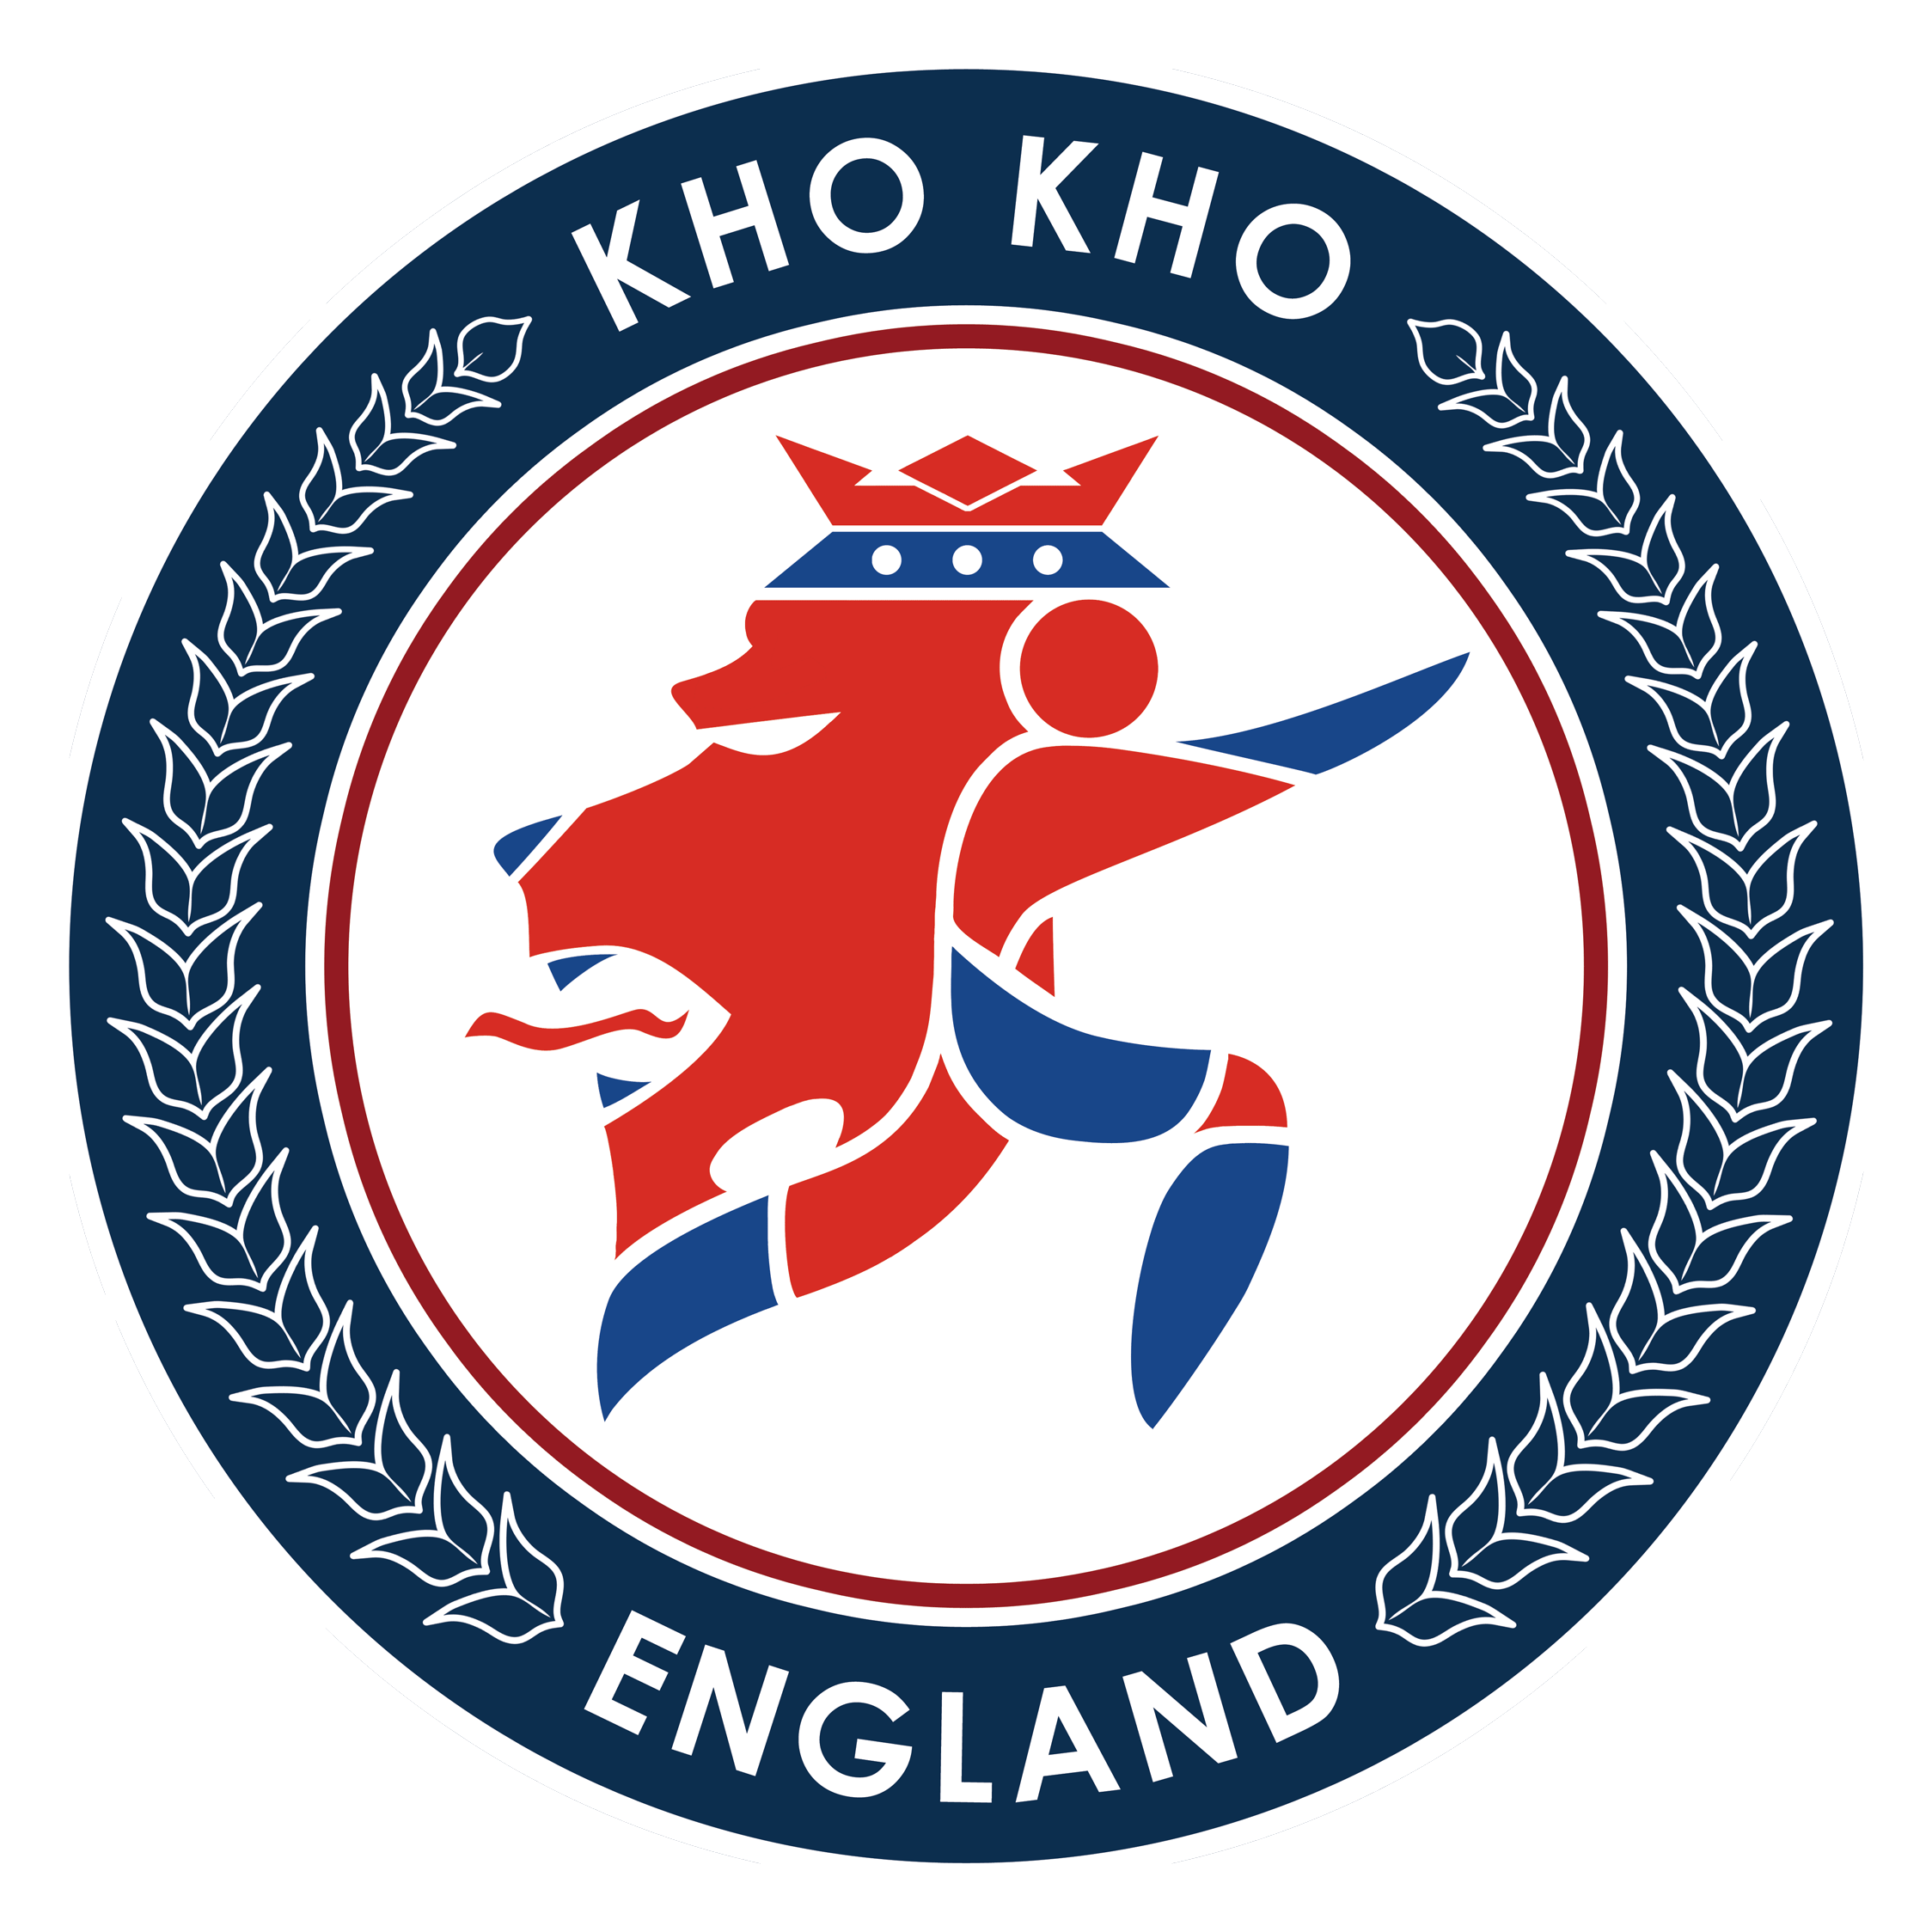 Welcome to the Kho Kho Federation of England - Kho Kho Game PNG